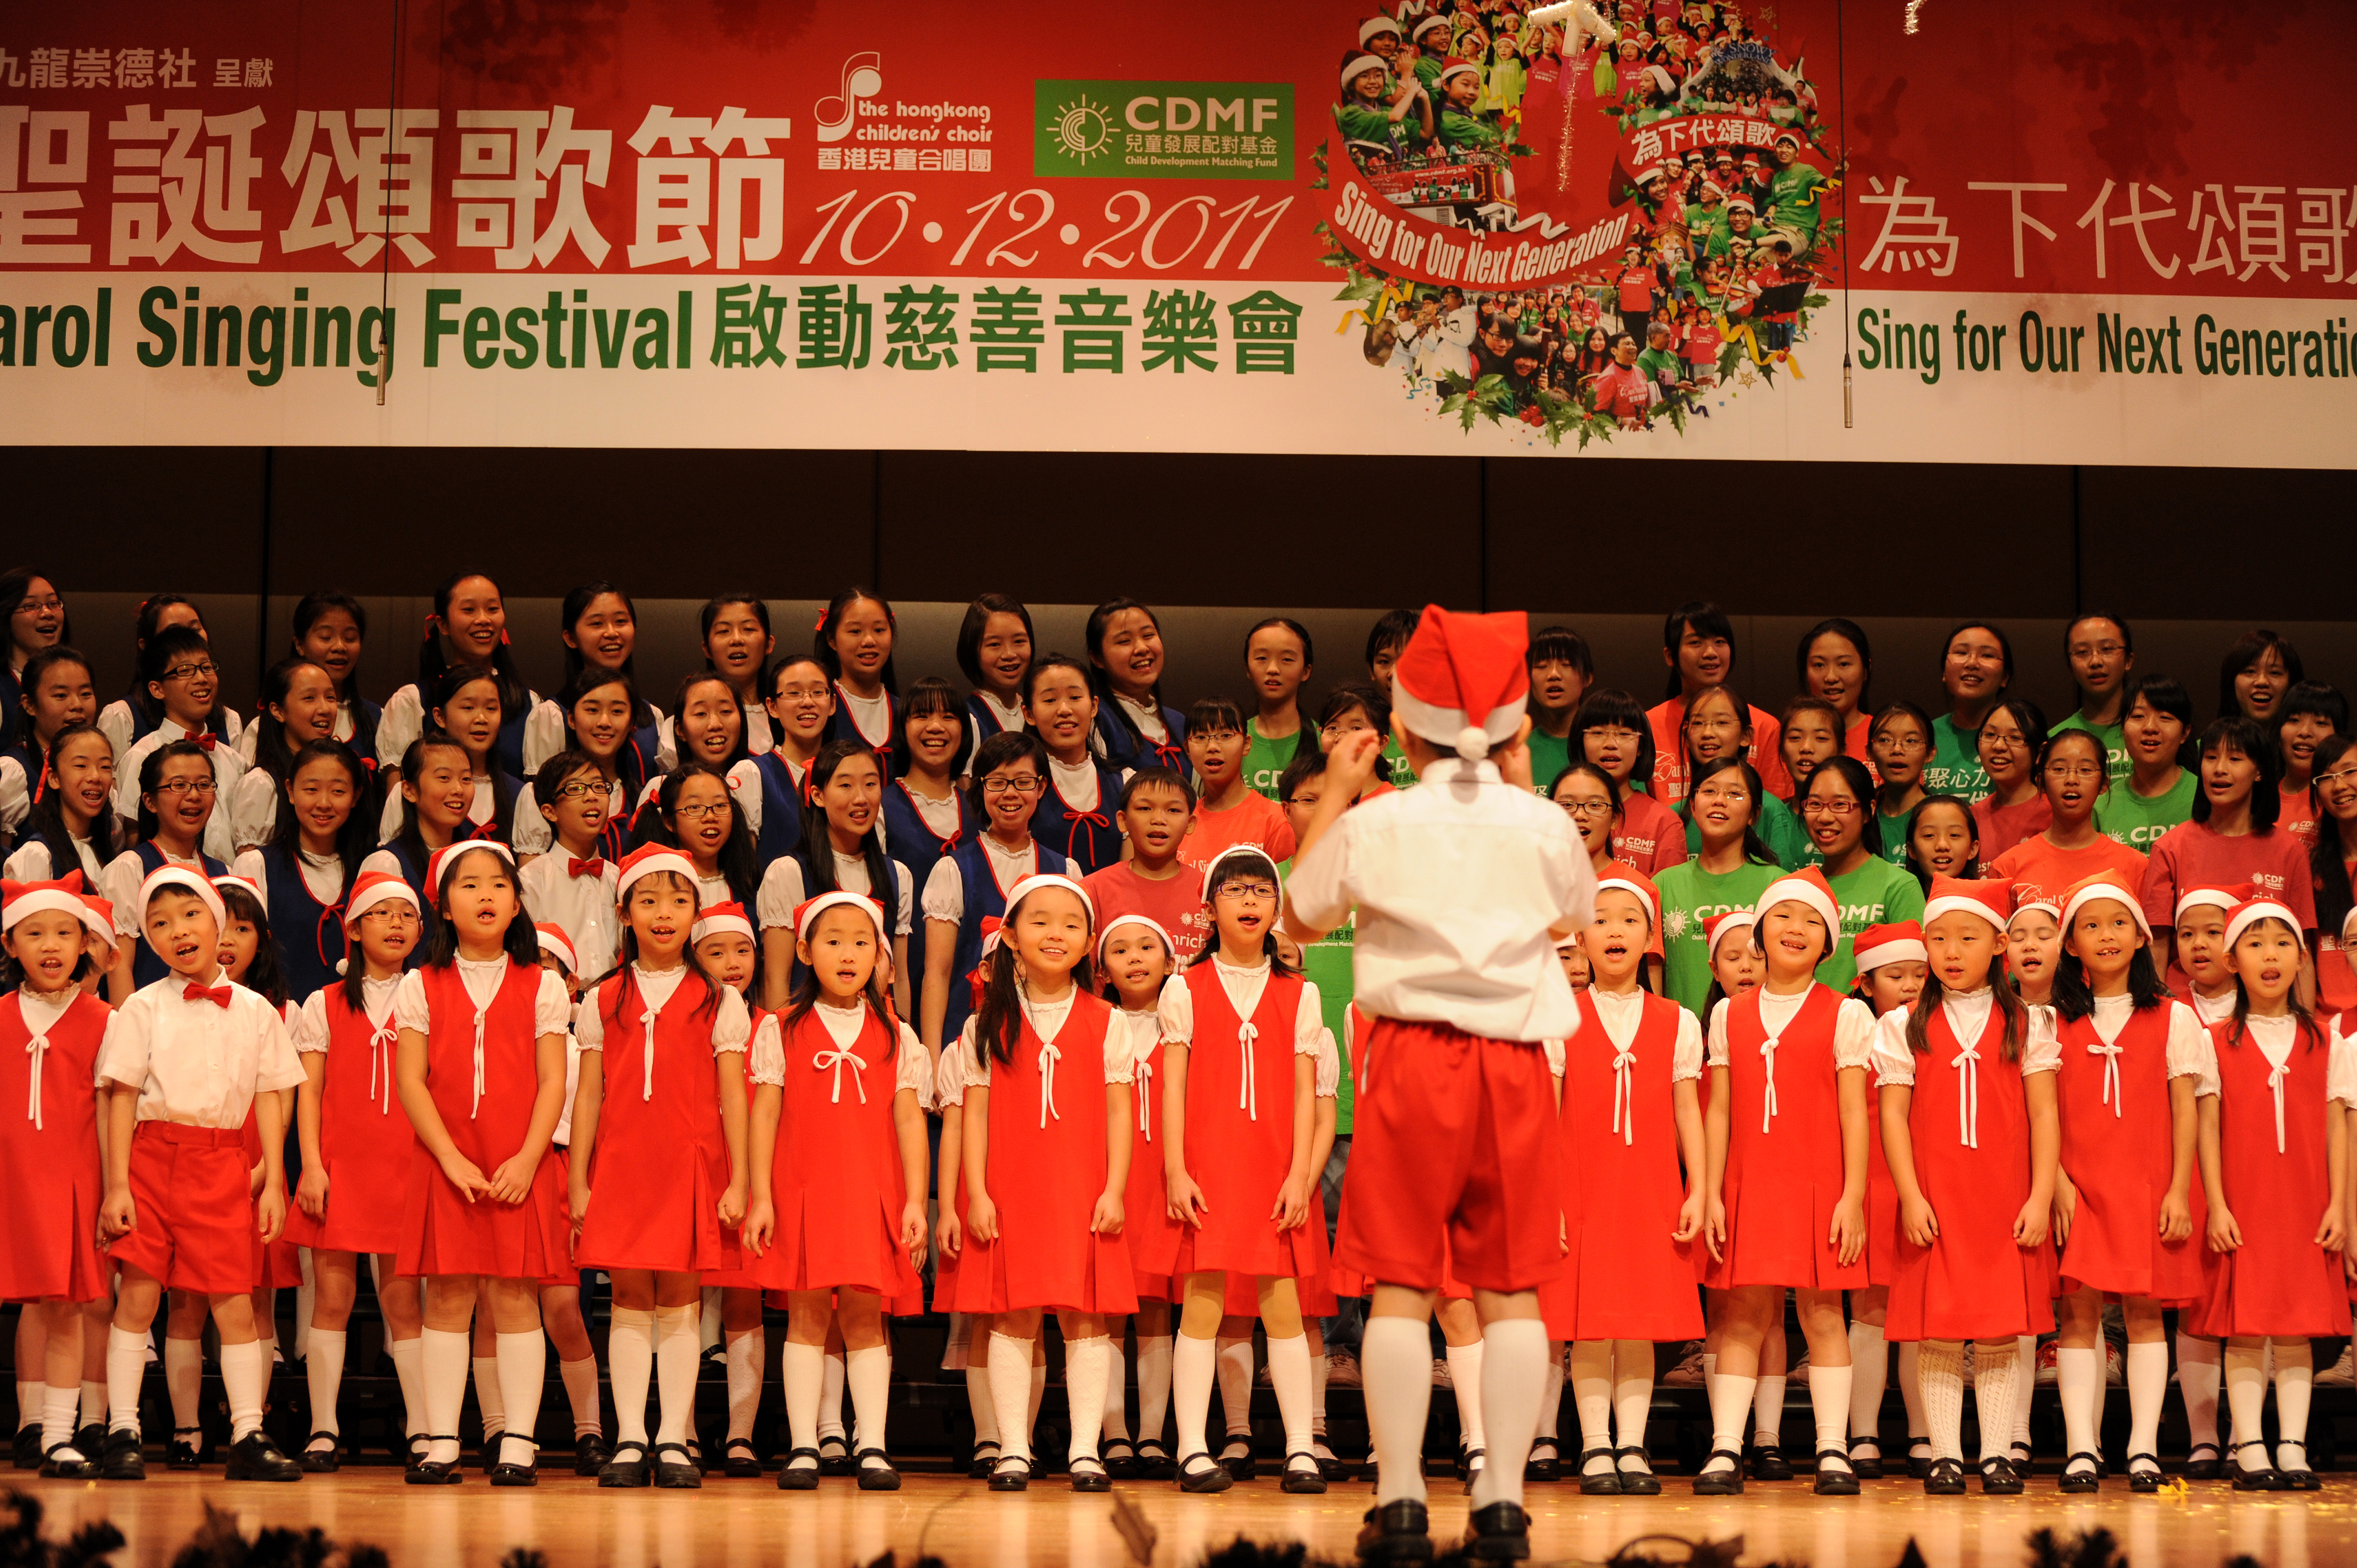 https://hkcchoir.org.hk/sites/default/files/charity_2011_cdmf1.jpg